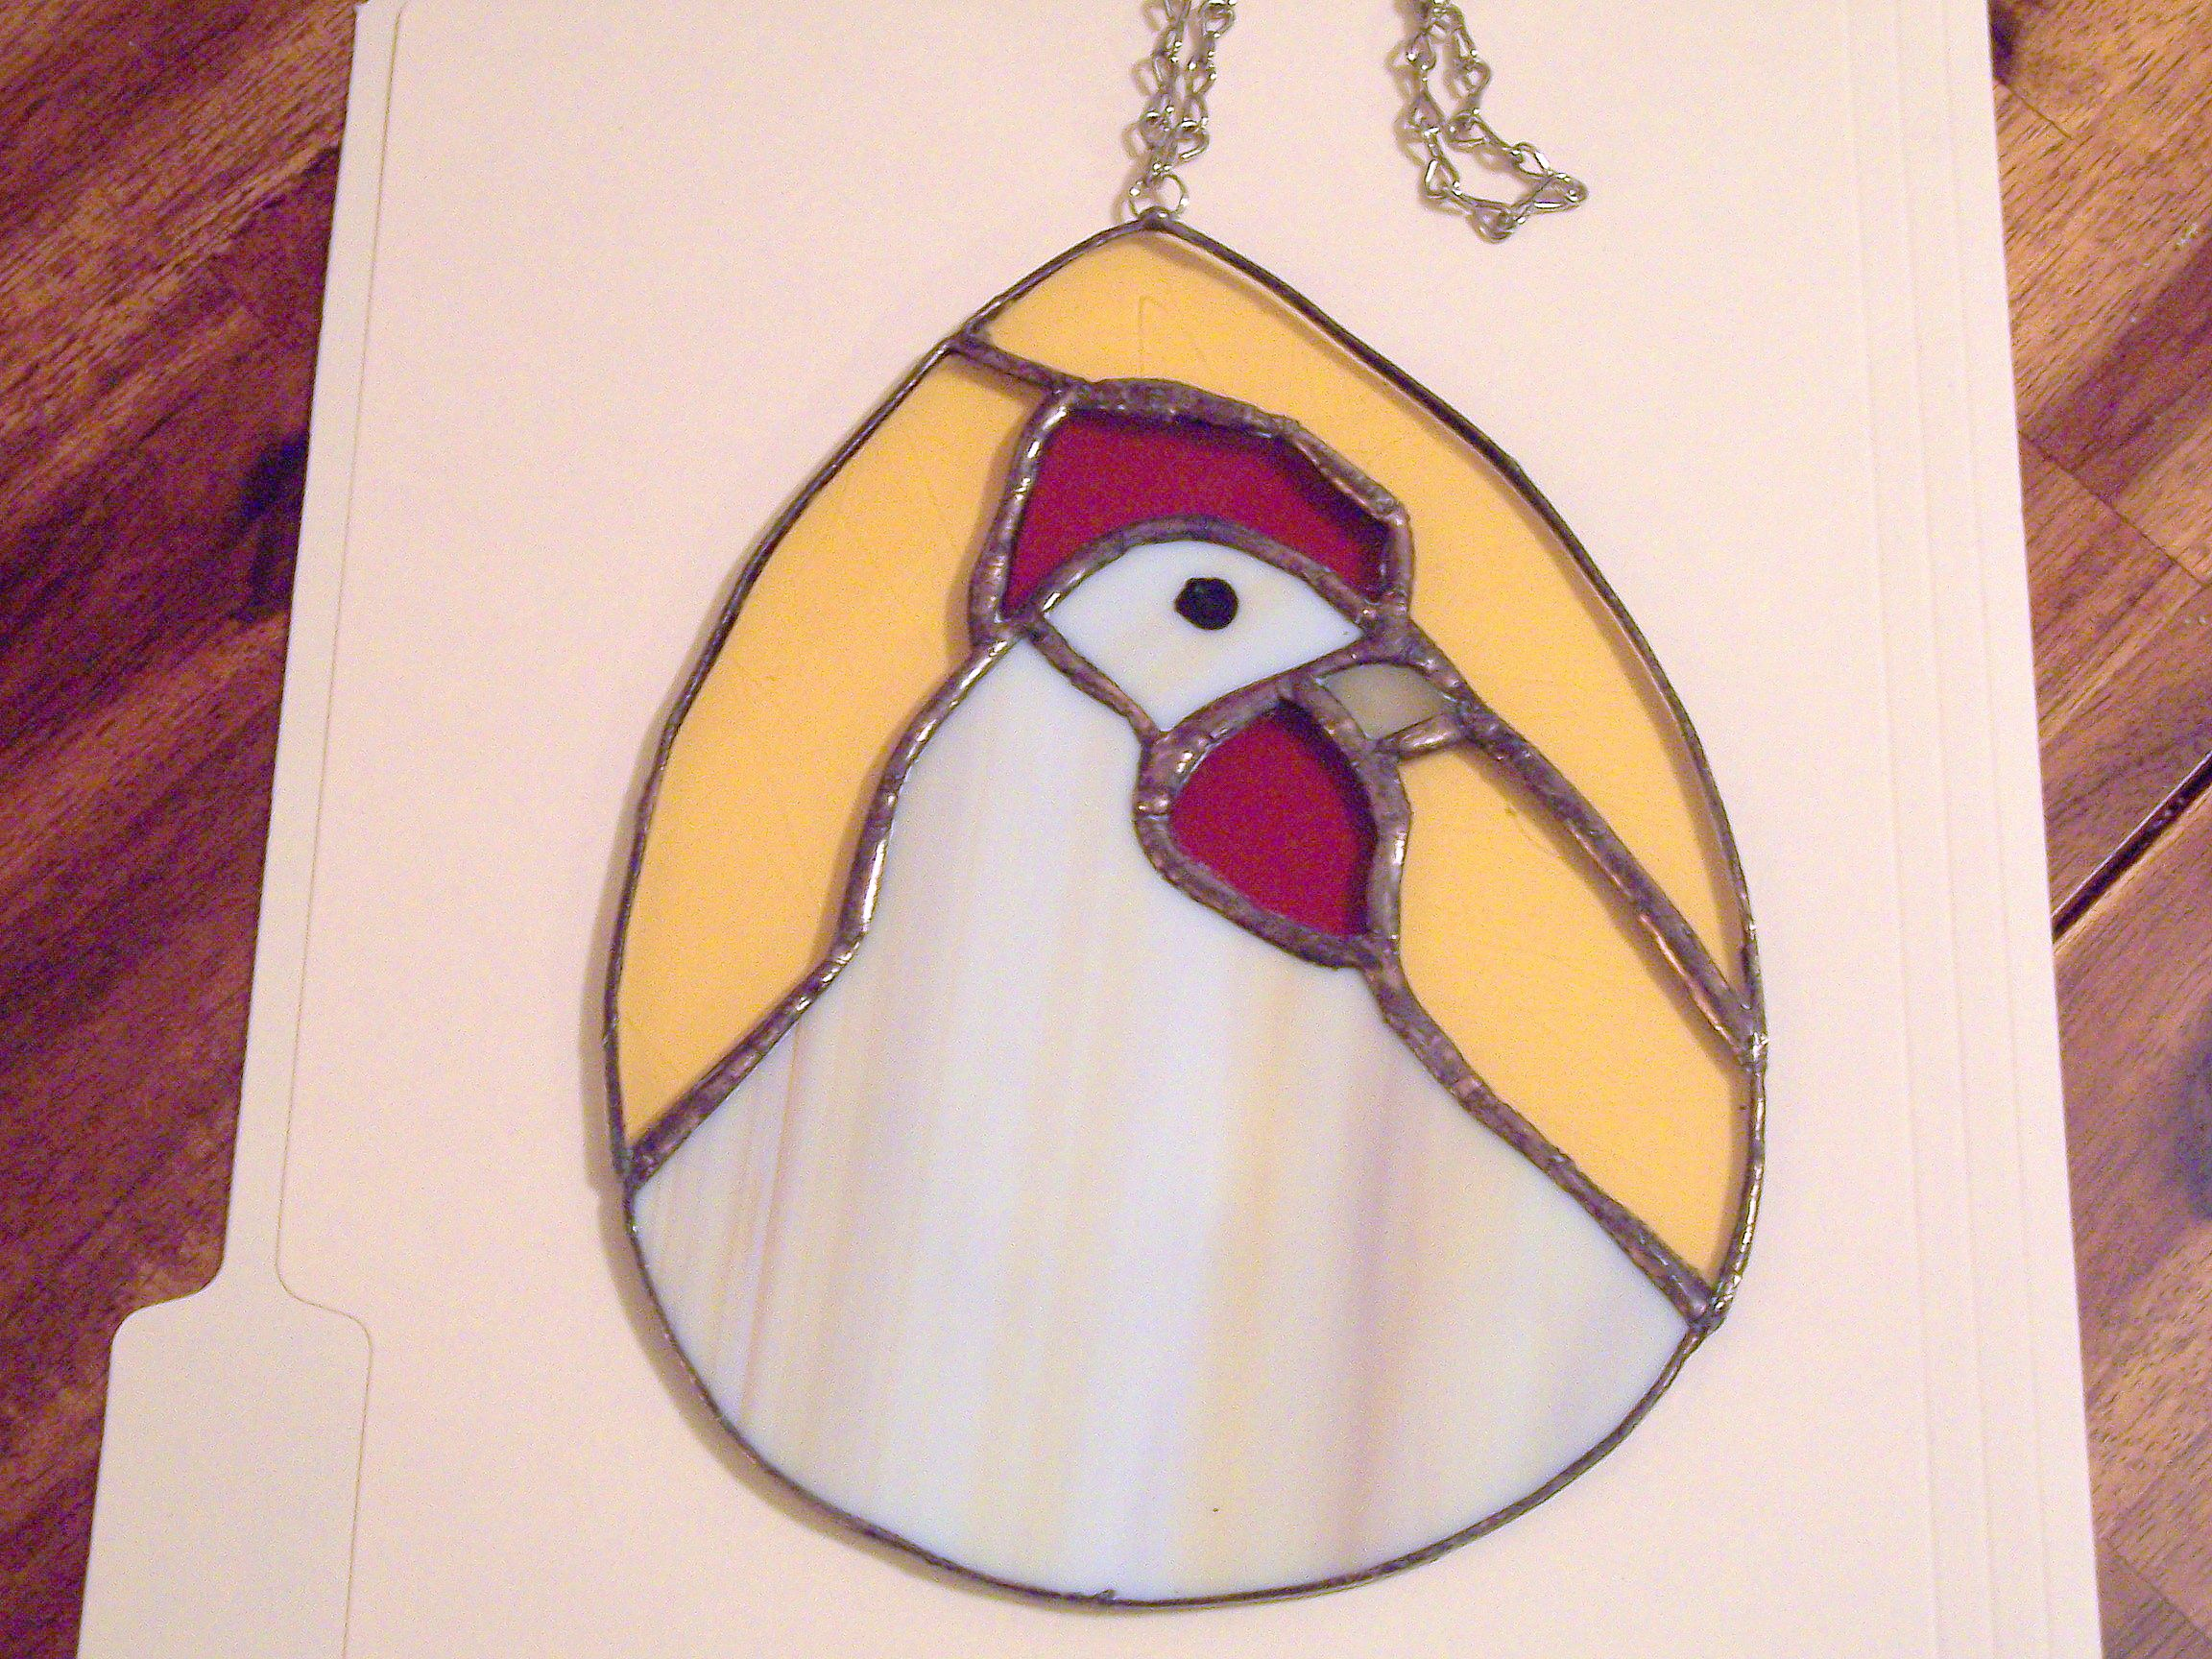 Hen in an Egg Suncatcher that I made for my shop on Etsy.com.  Please visit www.NancyBsStainedGlass.etsy.com